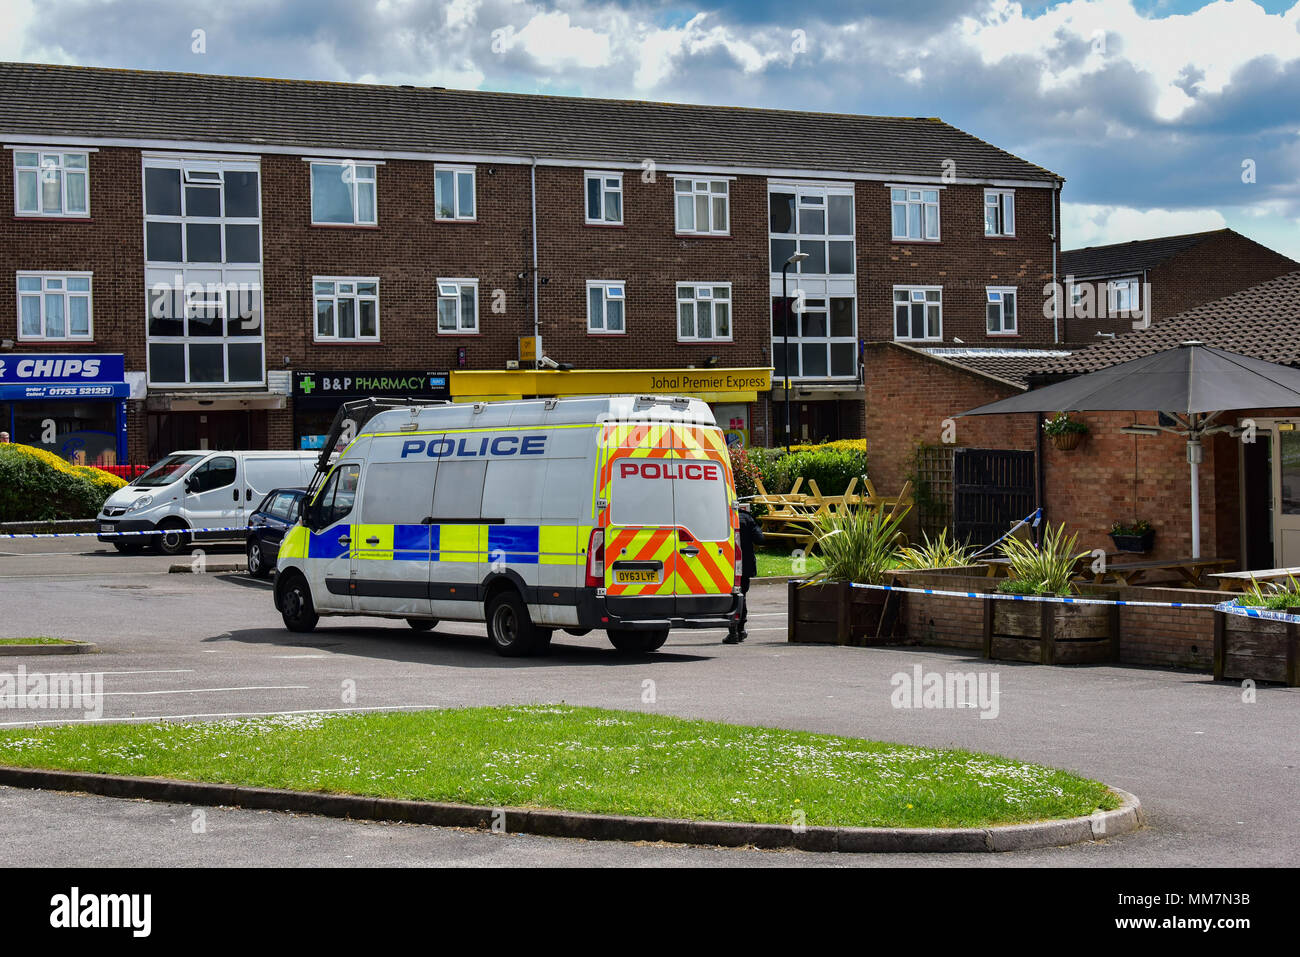 Slough, United Kingdom. 10th May 2018. A murder investigation has been launched after a man died following an incident in Slough. Police were called to The Earl of Cornwall Pub in Cippenham Lane at around 23:30 on 9th May 2018 to reports of a fight in progress. A 43-year-old man from Slough was taken to hospital with life-threatening injuries where he later died. Credit: Peter Manning/Alamy Live NewsStock Photo